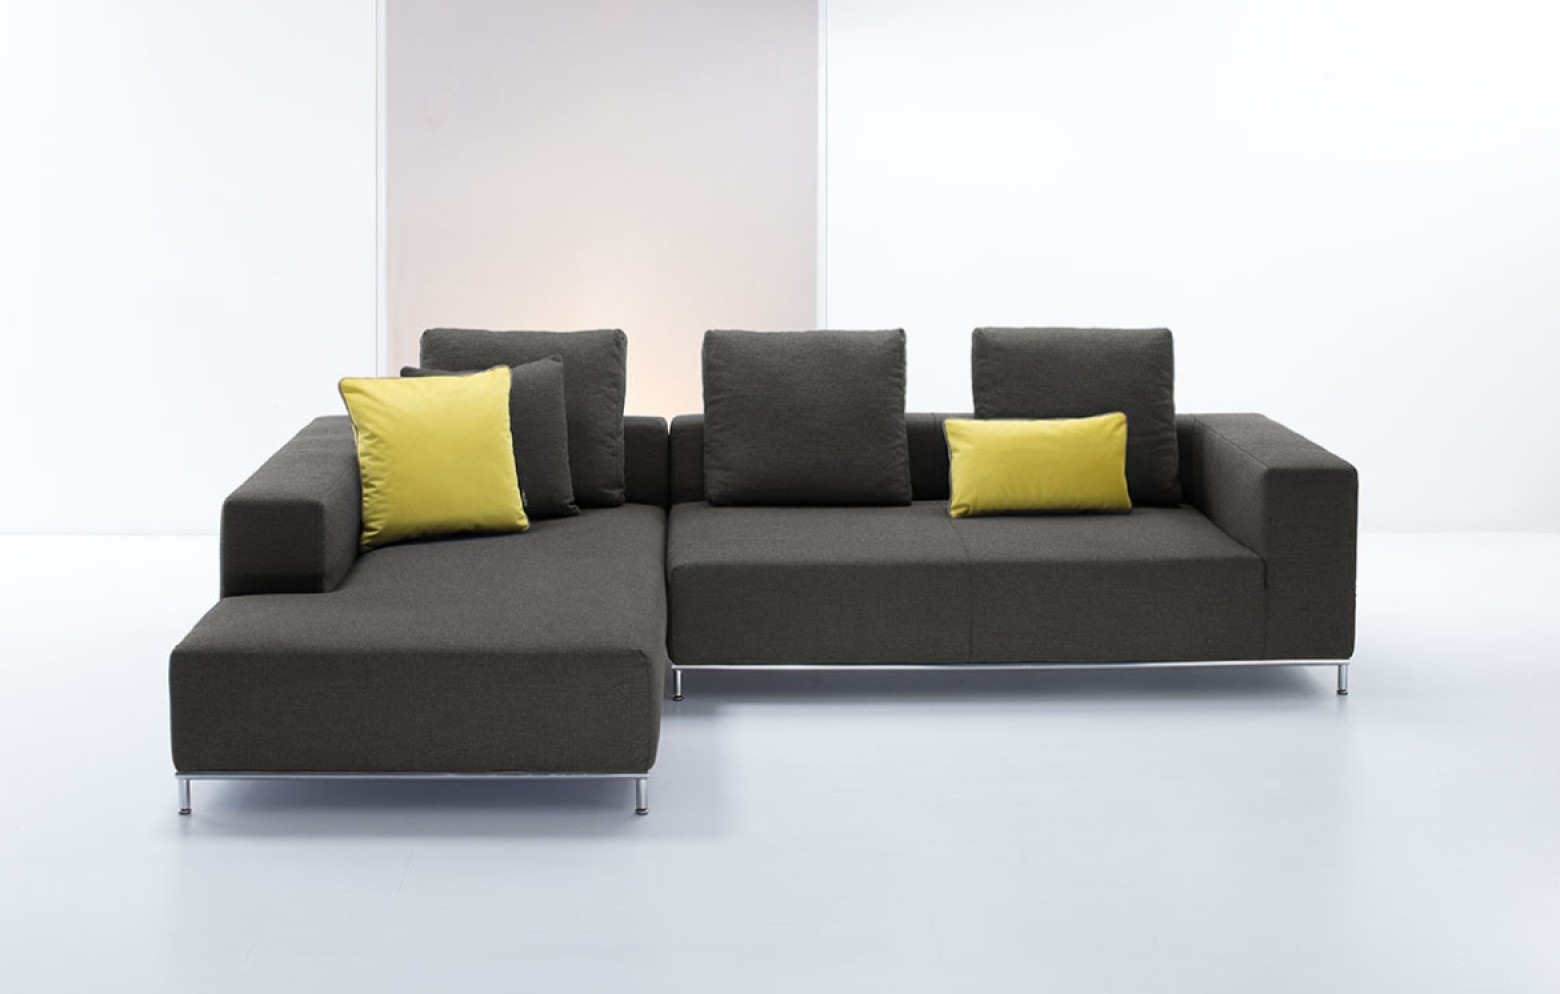 granada sonderedition 1 sofas online outlet who 39 s perfect. Black Bedroom Furniture Sets. Home Design Ideas